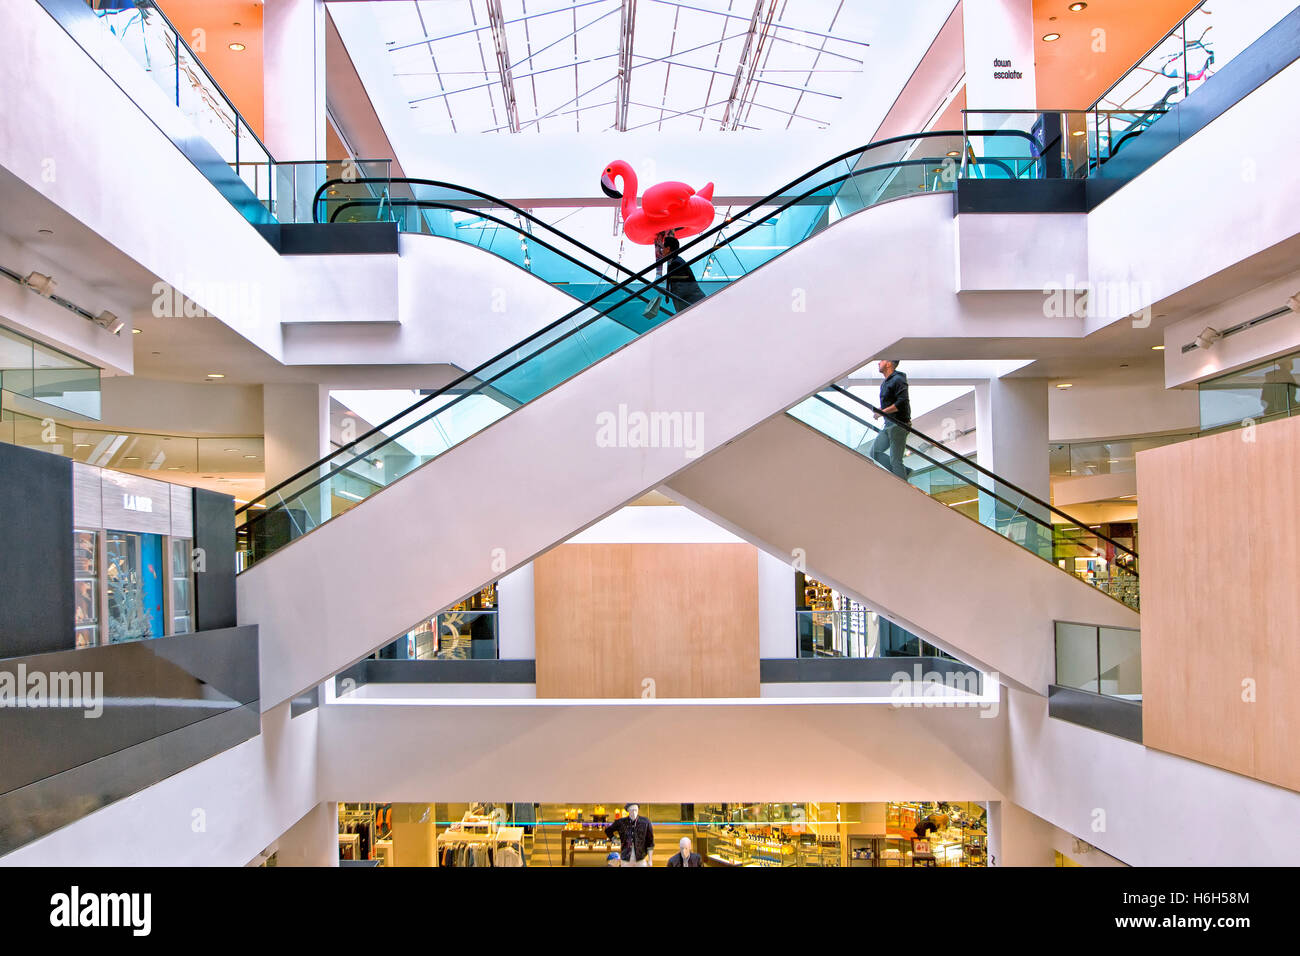 The Beverly center shopping Mall in Los Angeles - Stock Image